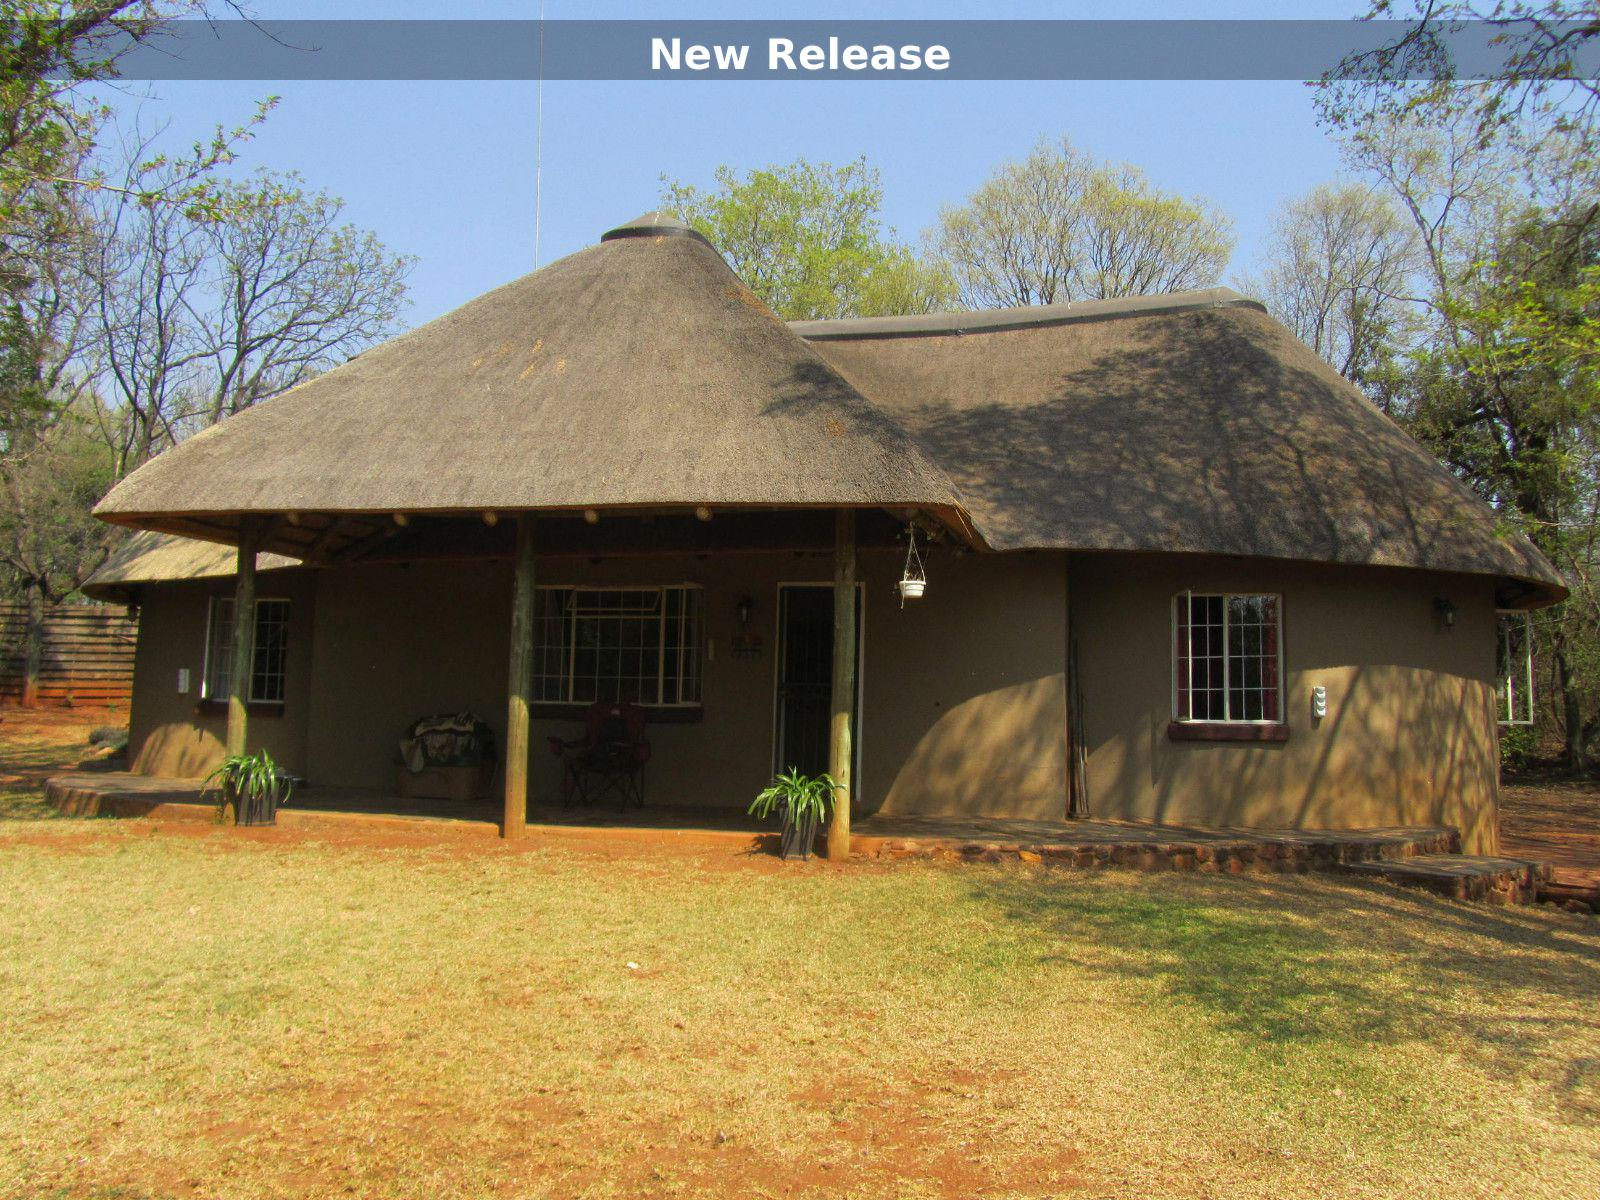 House in Hartbeespoort Dam Area - New Thatch roof